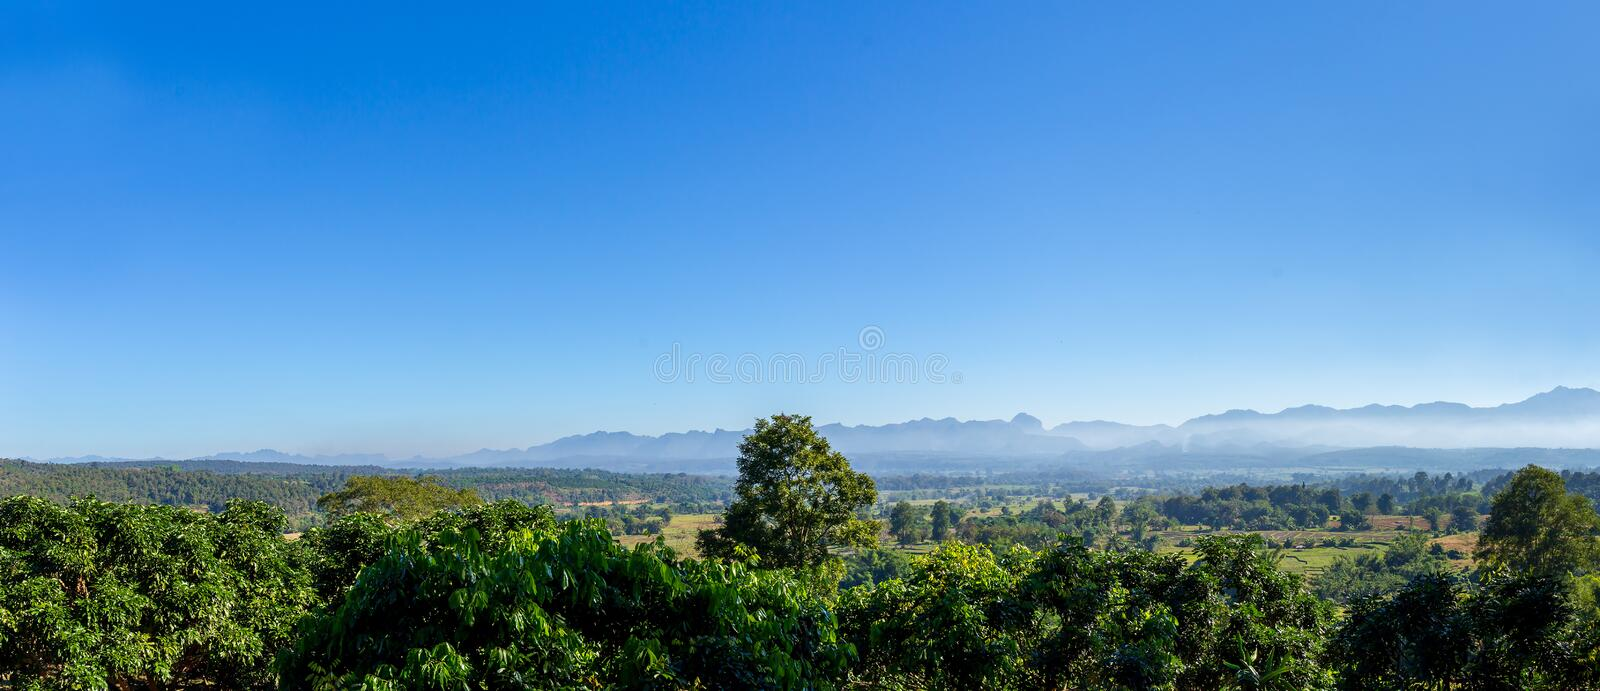 Panorama landscape of mountain forest with alone tall tree in the center. royalty free stock image